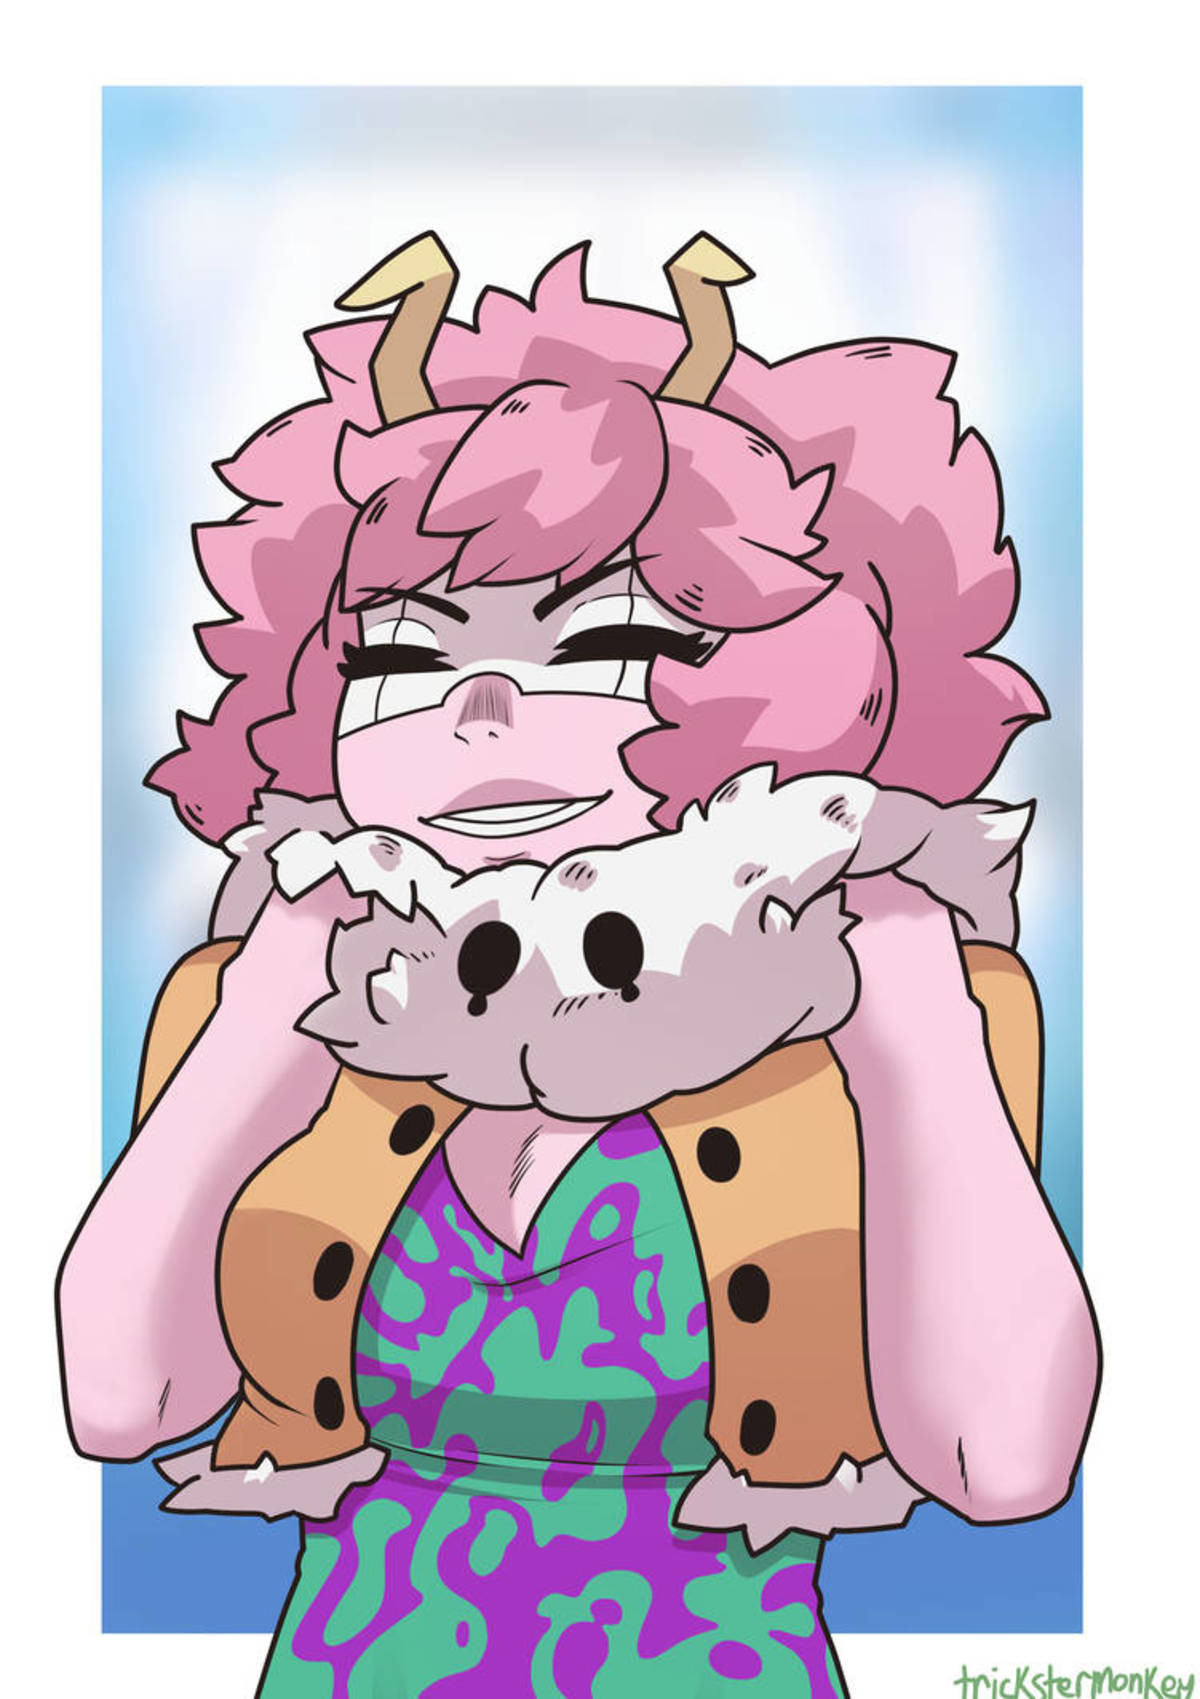 Daily Ashido 134. join list: DailyAlienQueen (292 subs)Mention Clicks: 48123Msgs Sent: 101296Mention History .. i'll be honest fam this life got me up